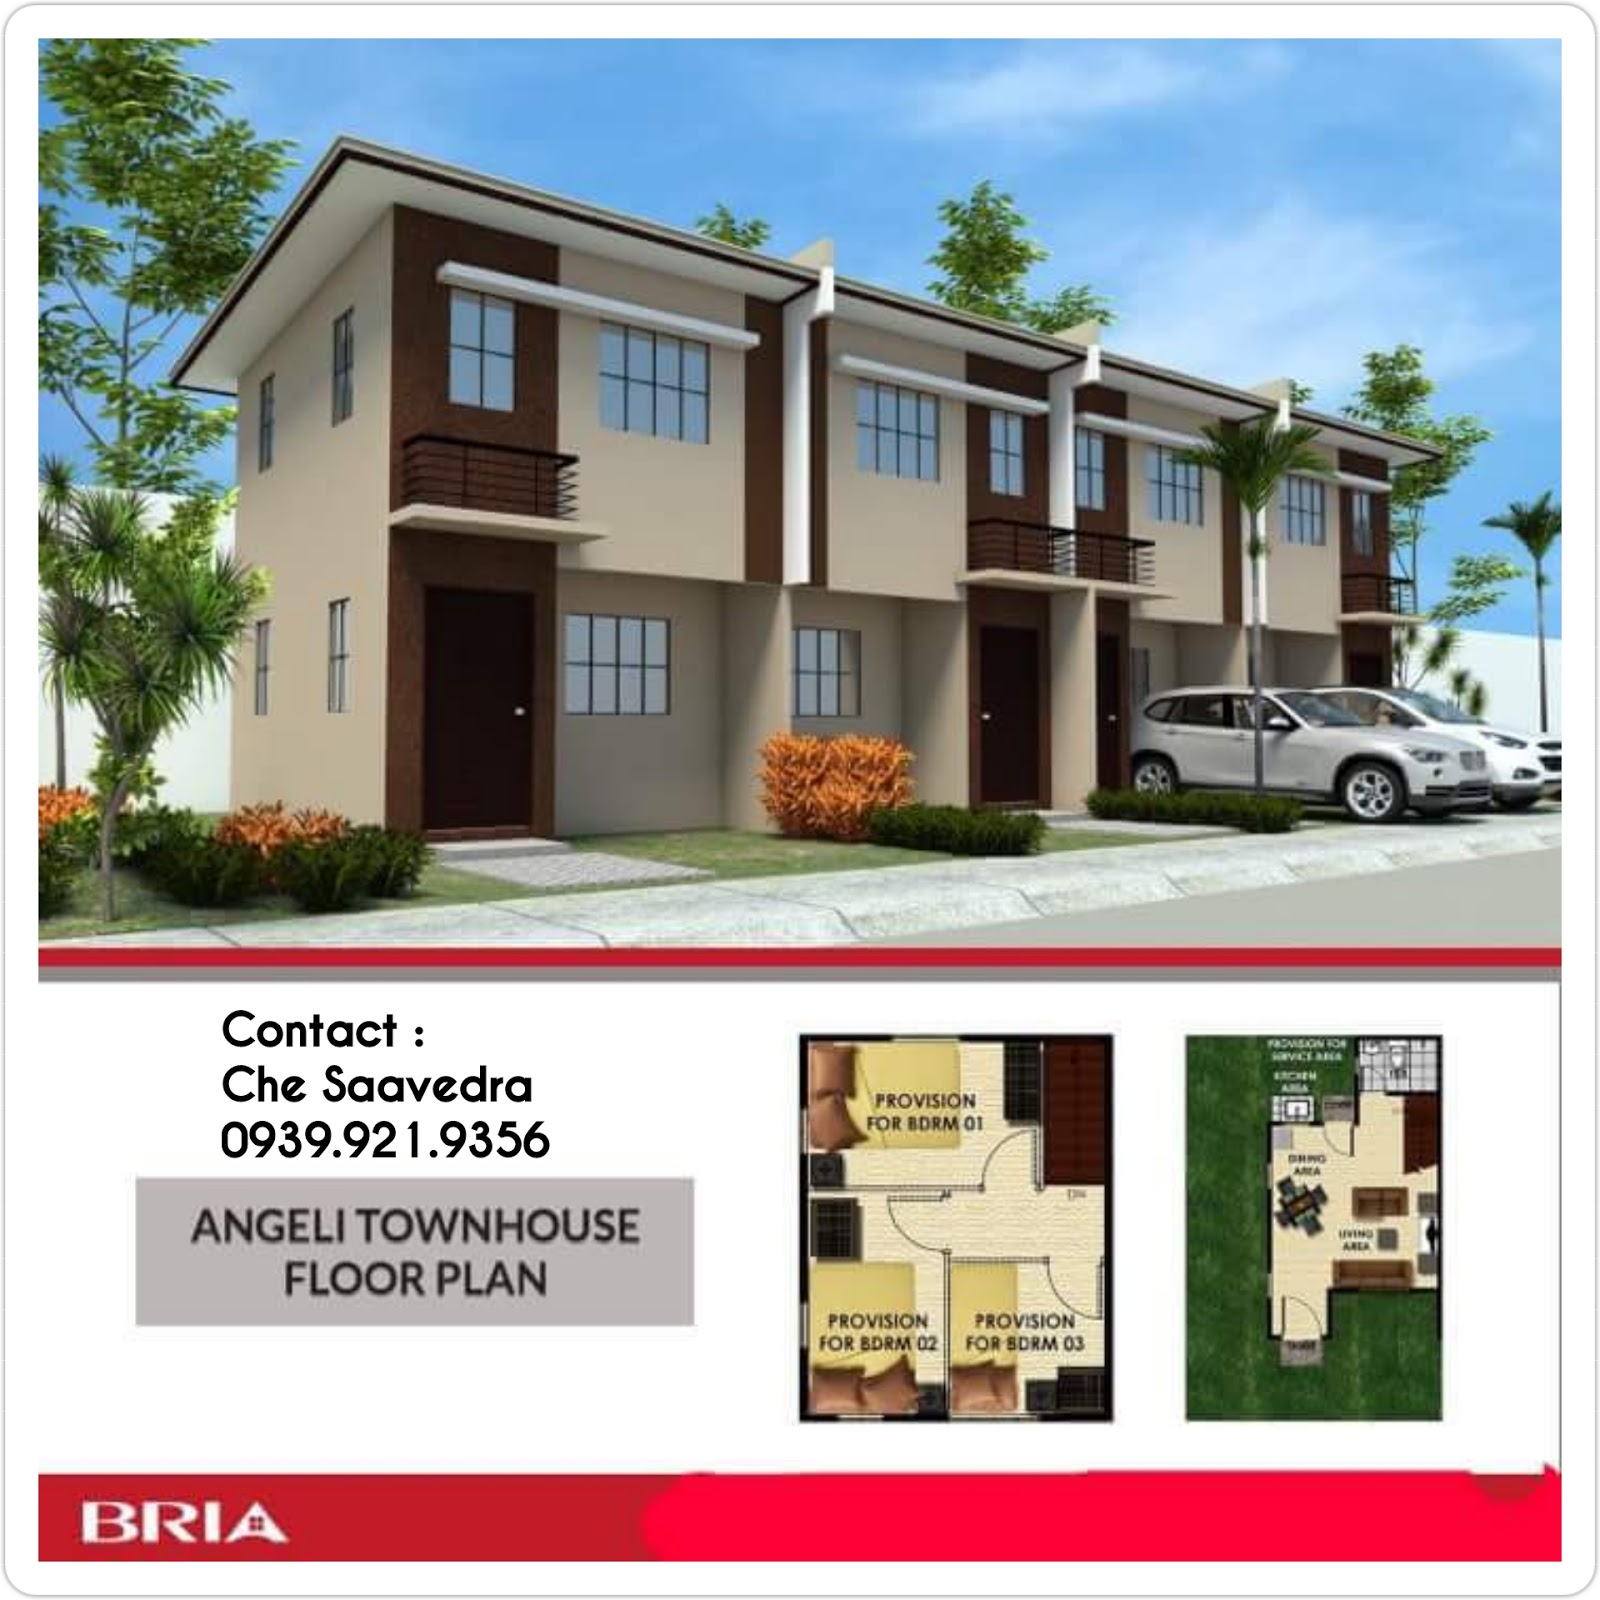 Low Cost Housing in the Philippines: affordable house antipolo